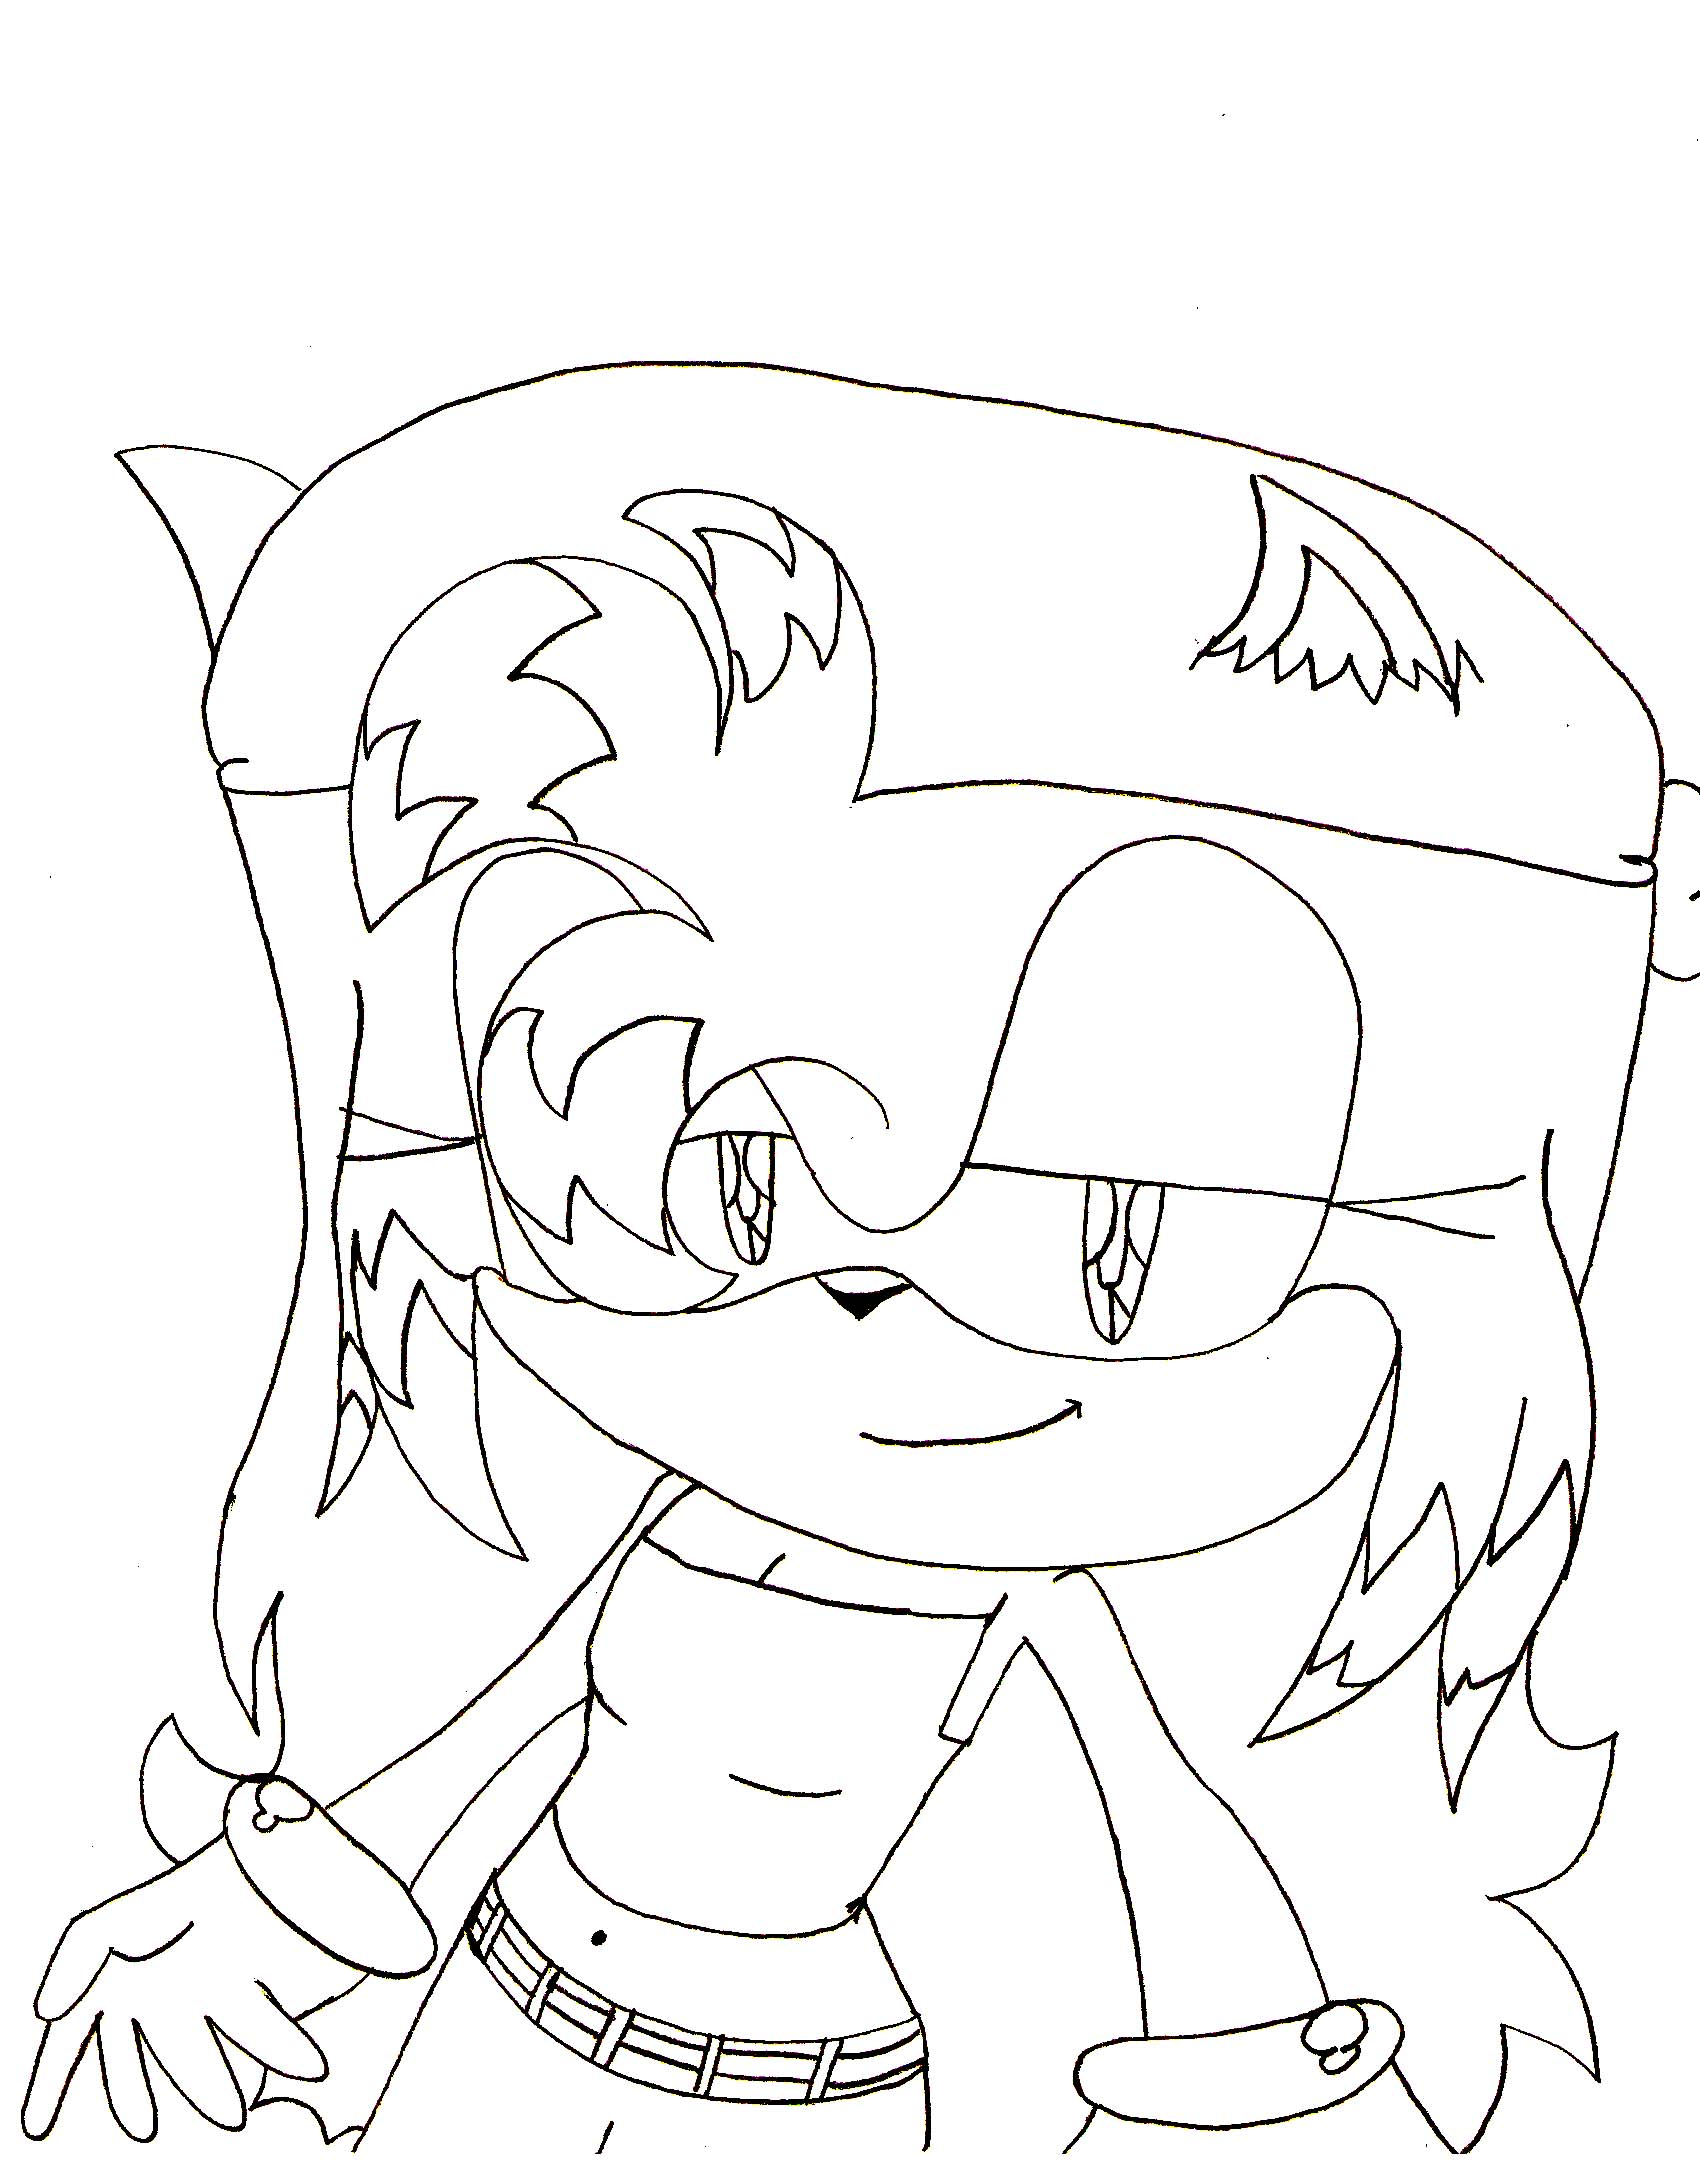 Ari the hedgehog(lineart)